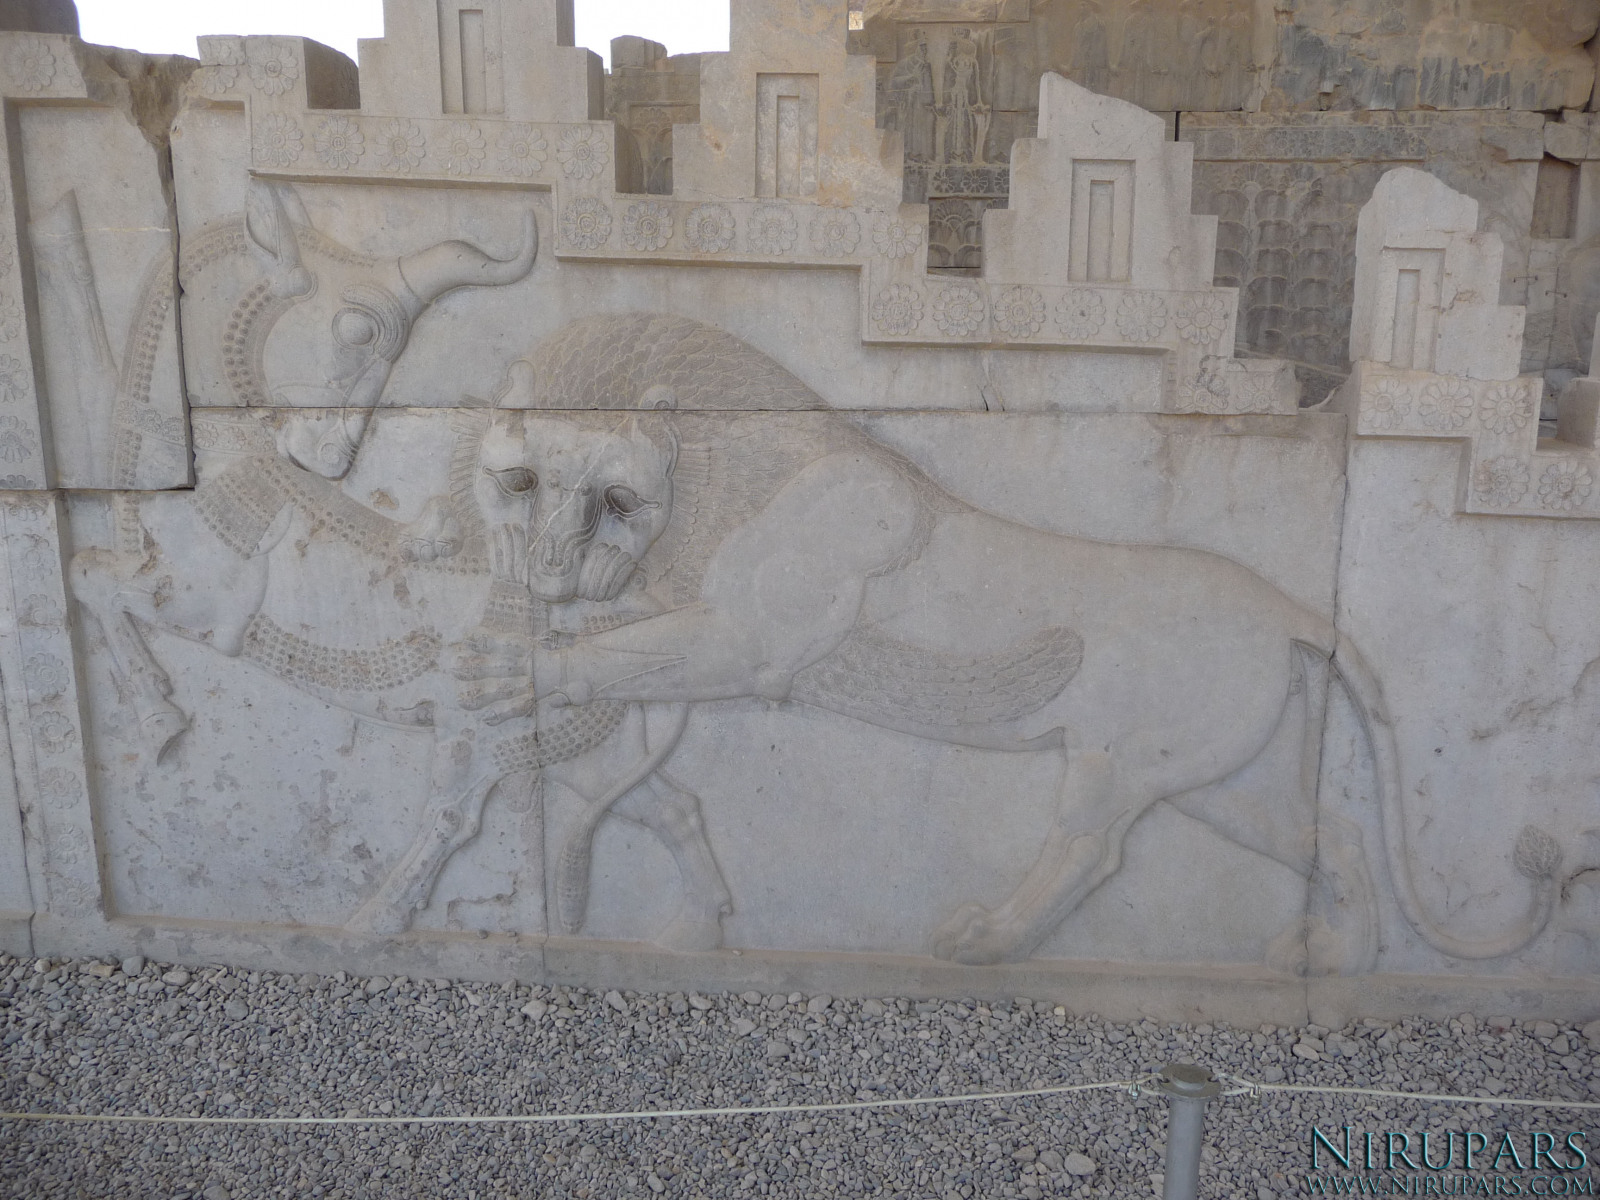 Persepolis - Council Hall Tripylon - North Portico - Lion Bull Relief